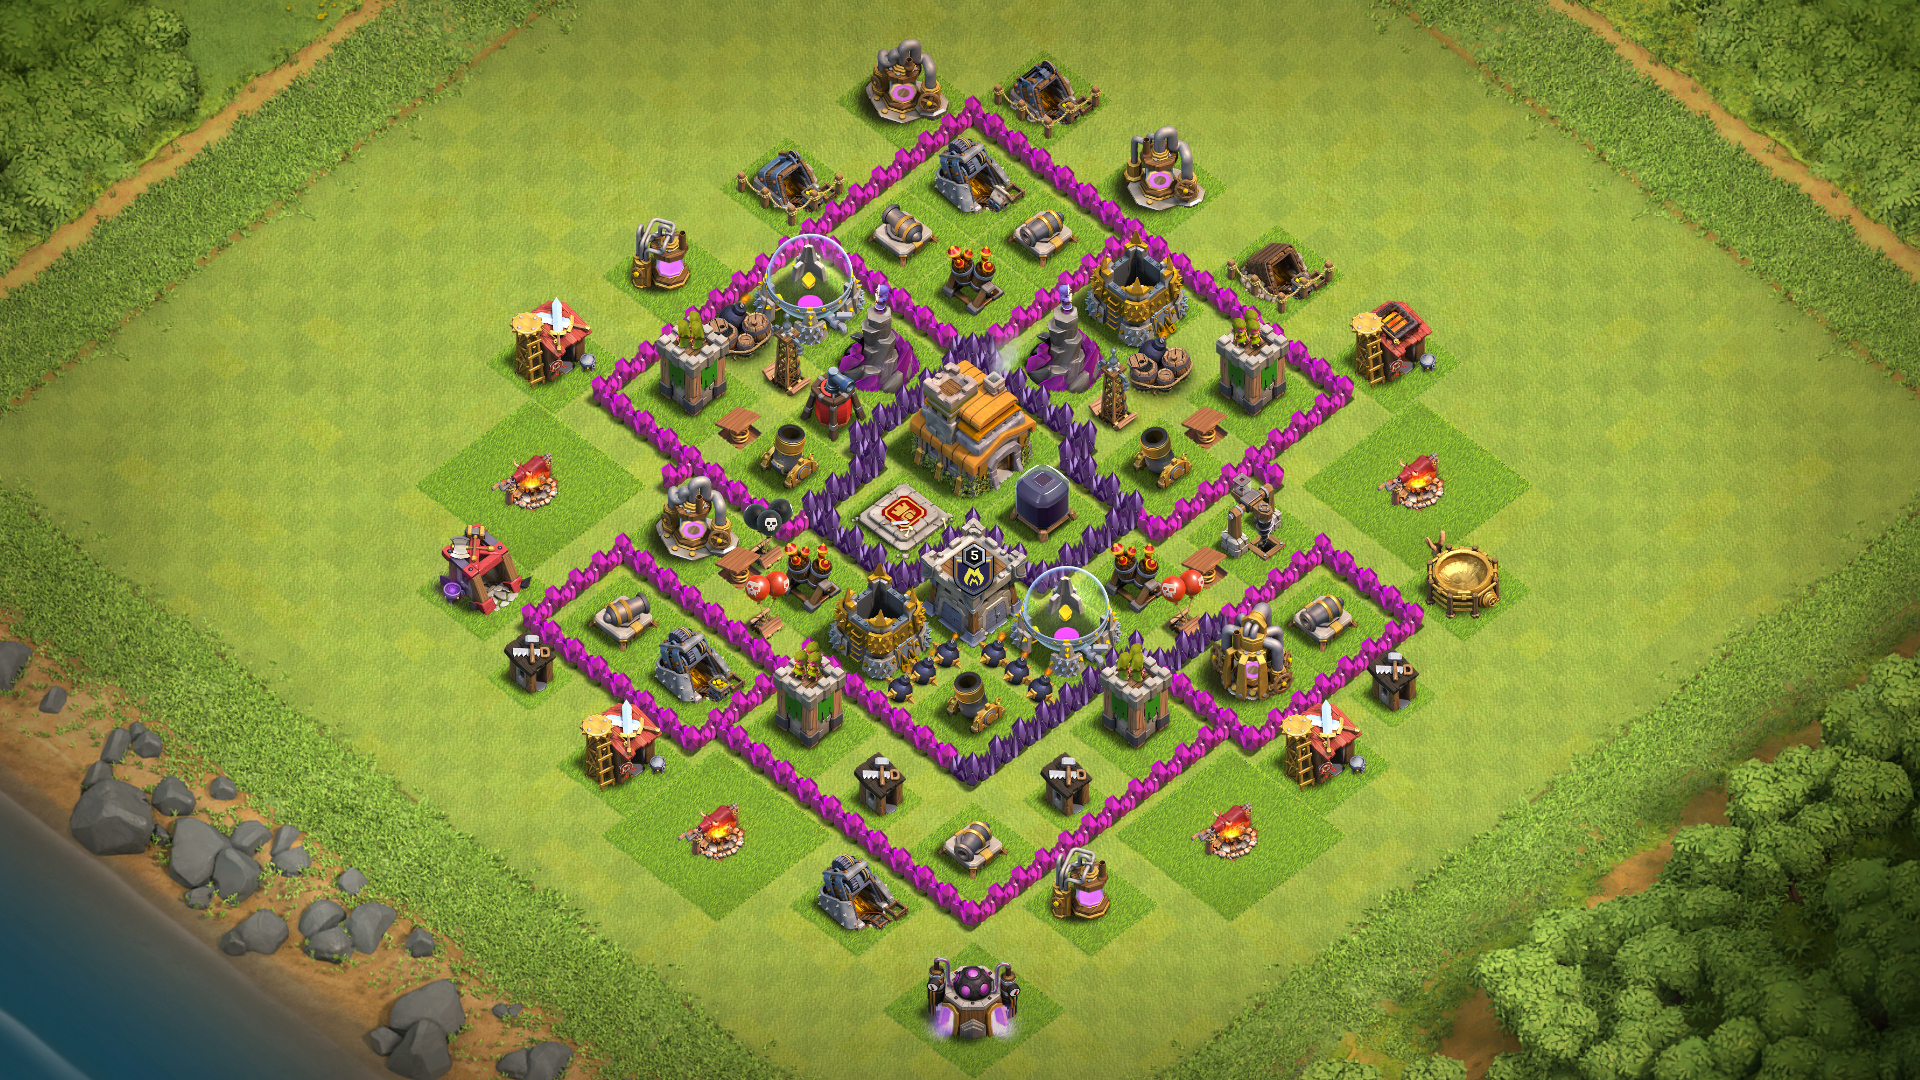 New Town Hall 7 Th7 Base 2018 August